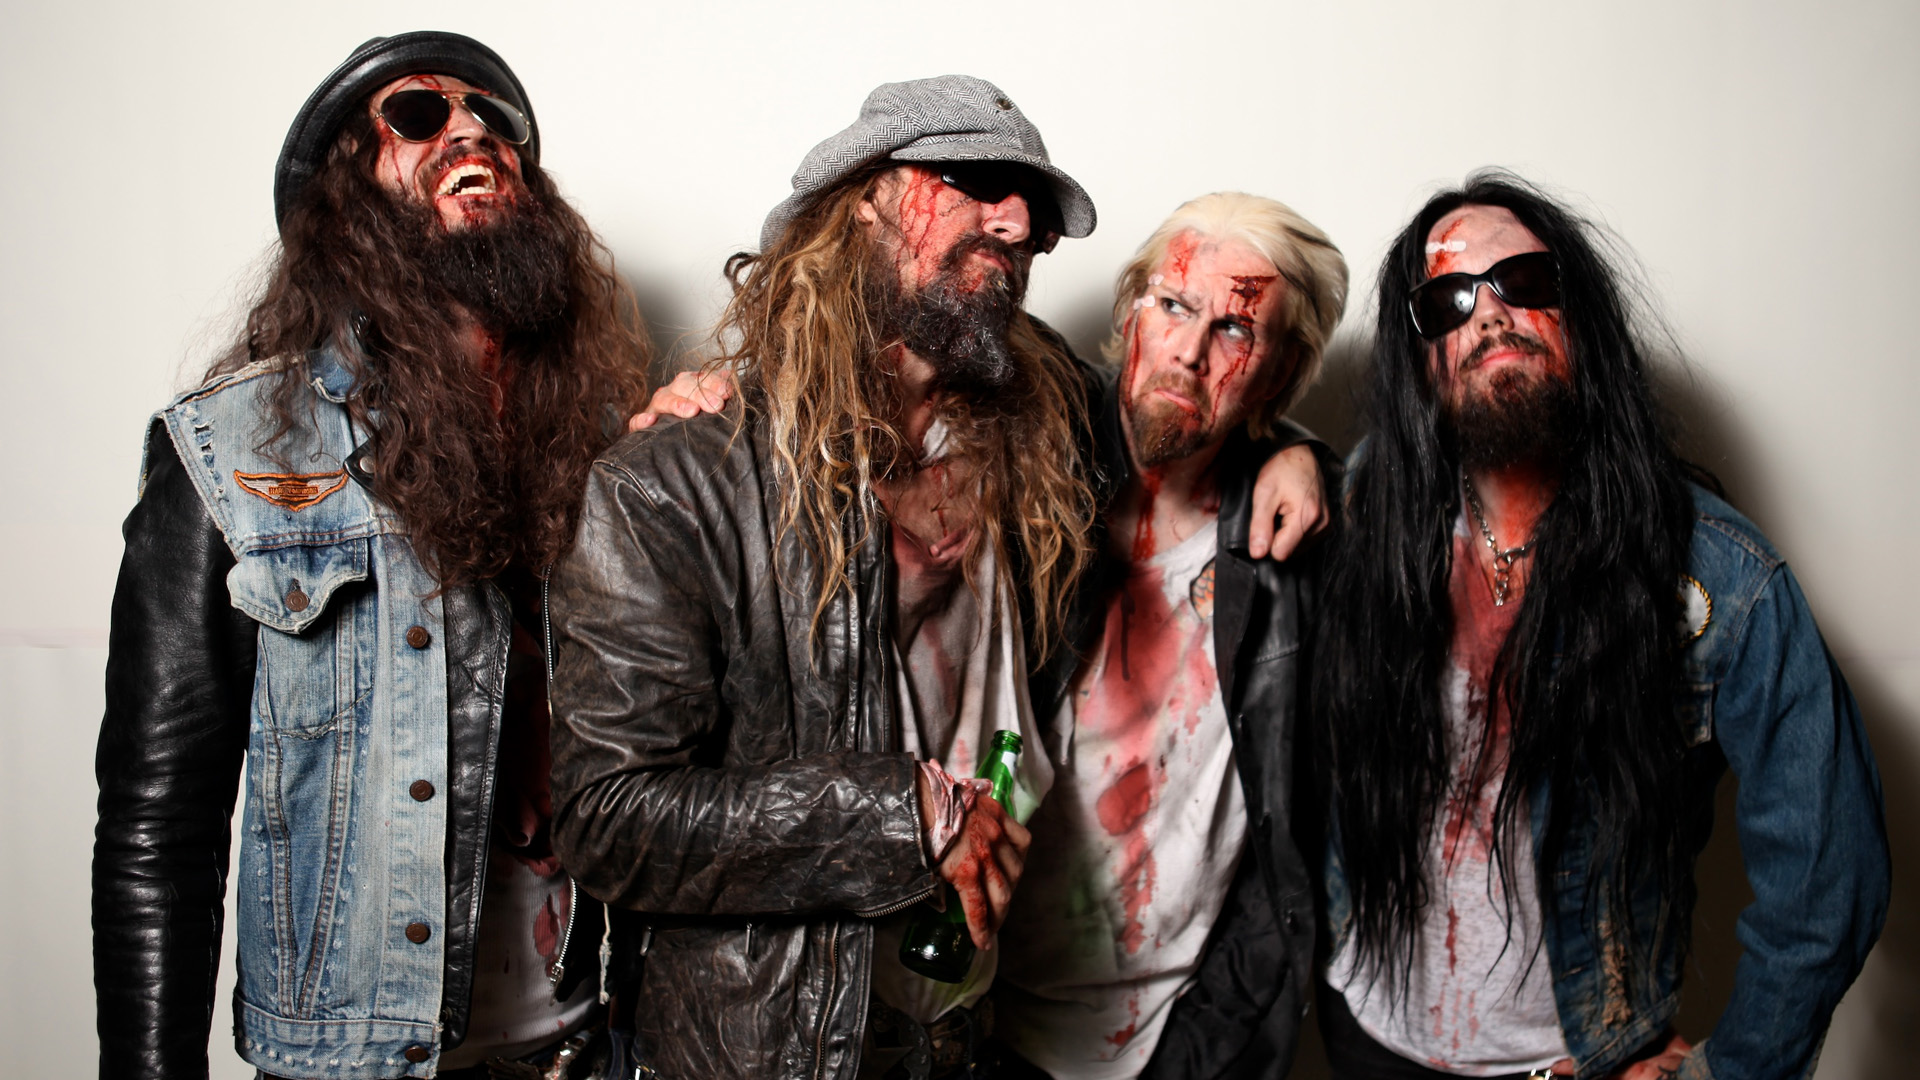 Music Rob Zombie Wallpaper Free Download 1920x1080px